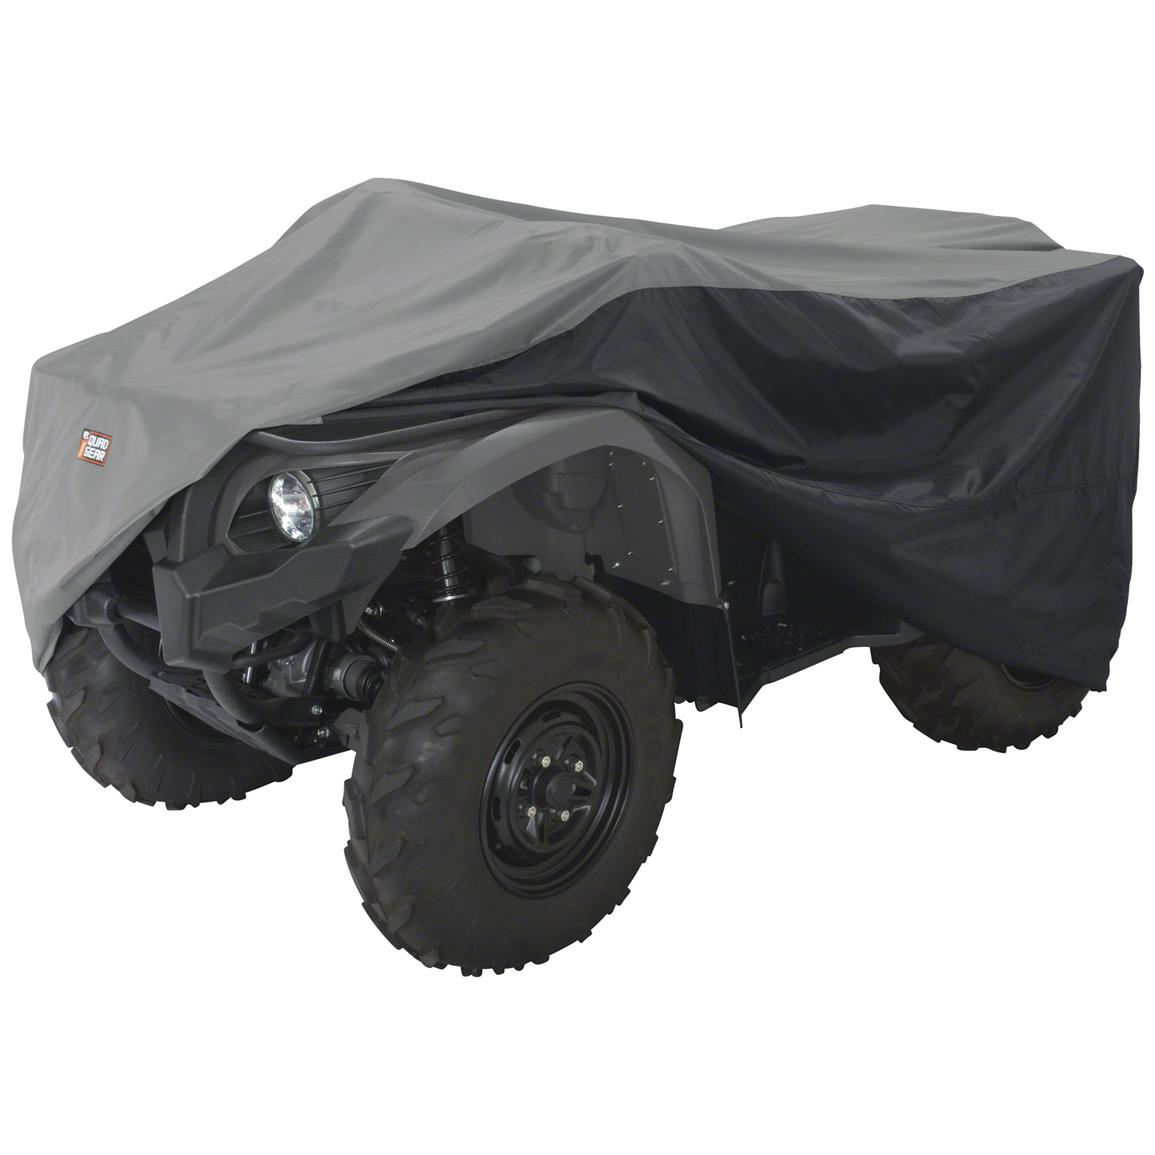 Classic Accessories ATV Storage Cover, Black / Gray